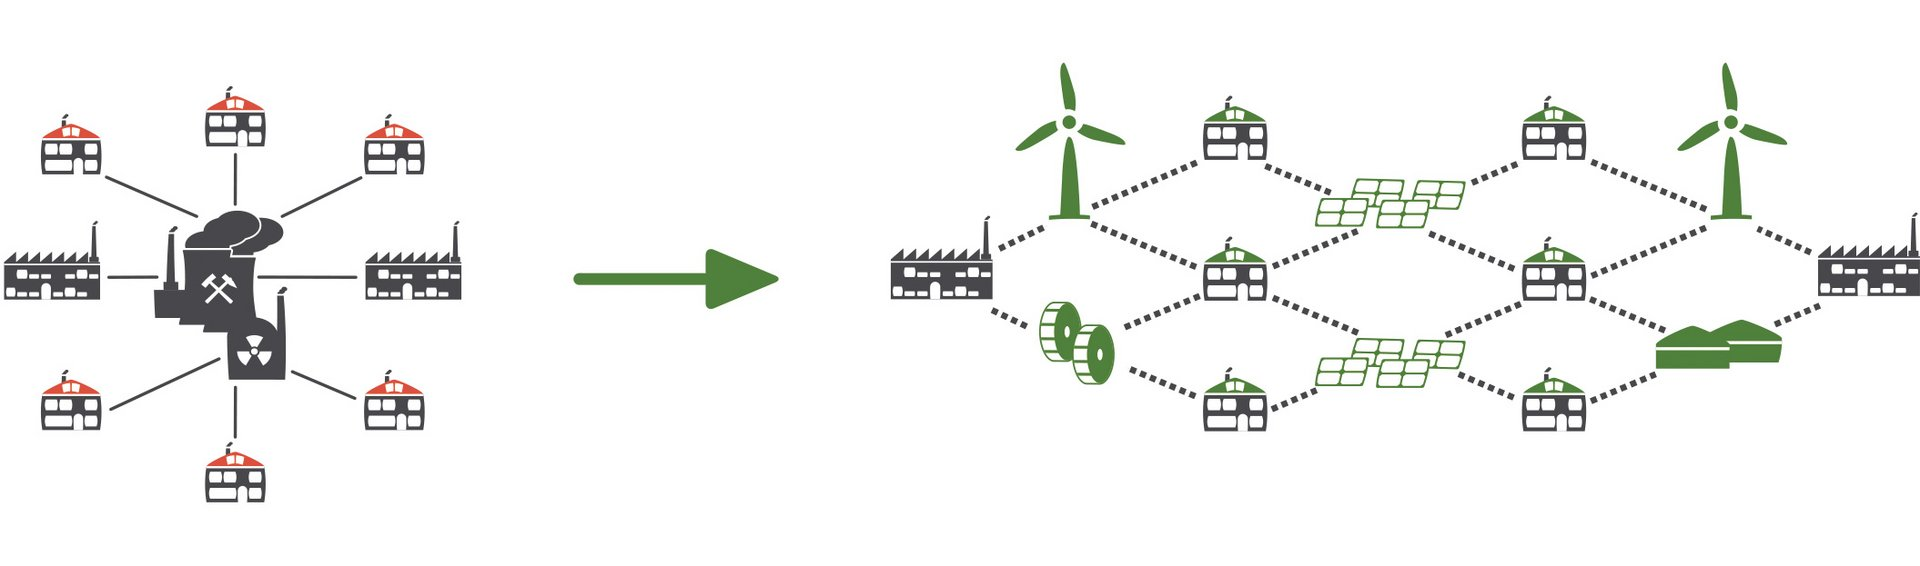 Future energy supply: 100% renewable energies from decentralized green power plants